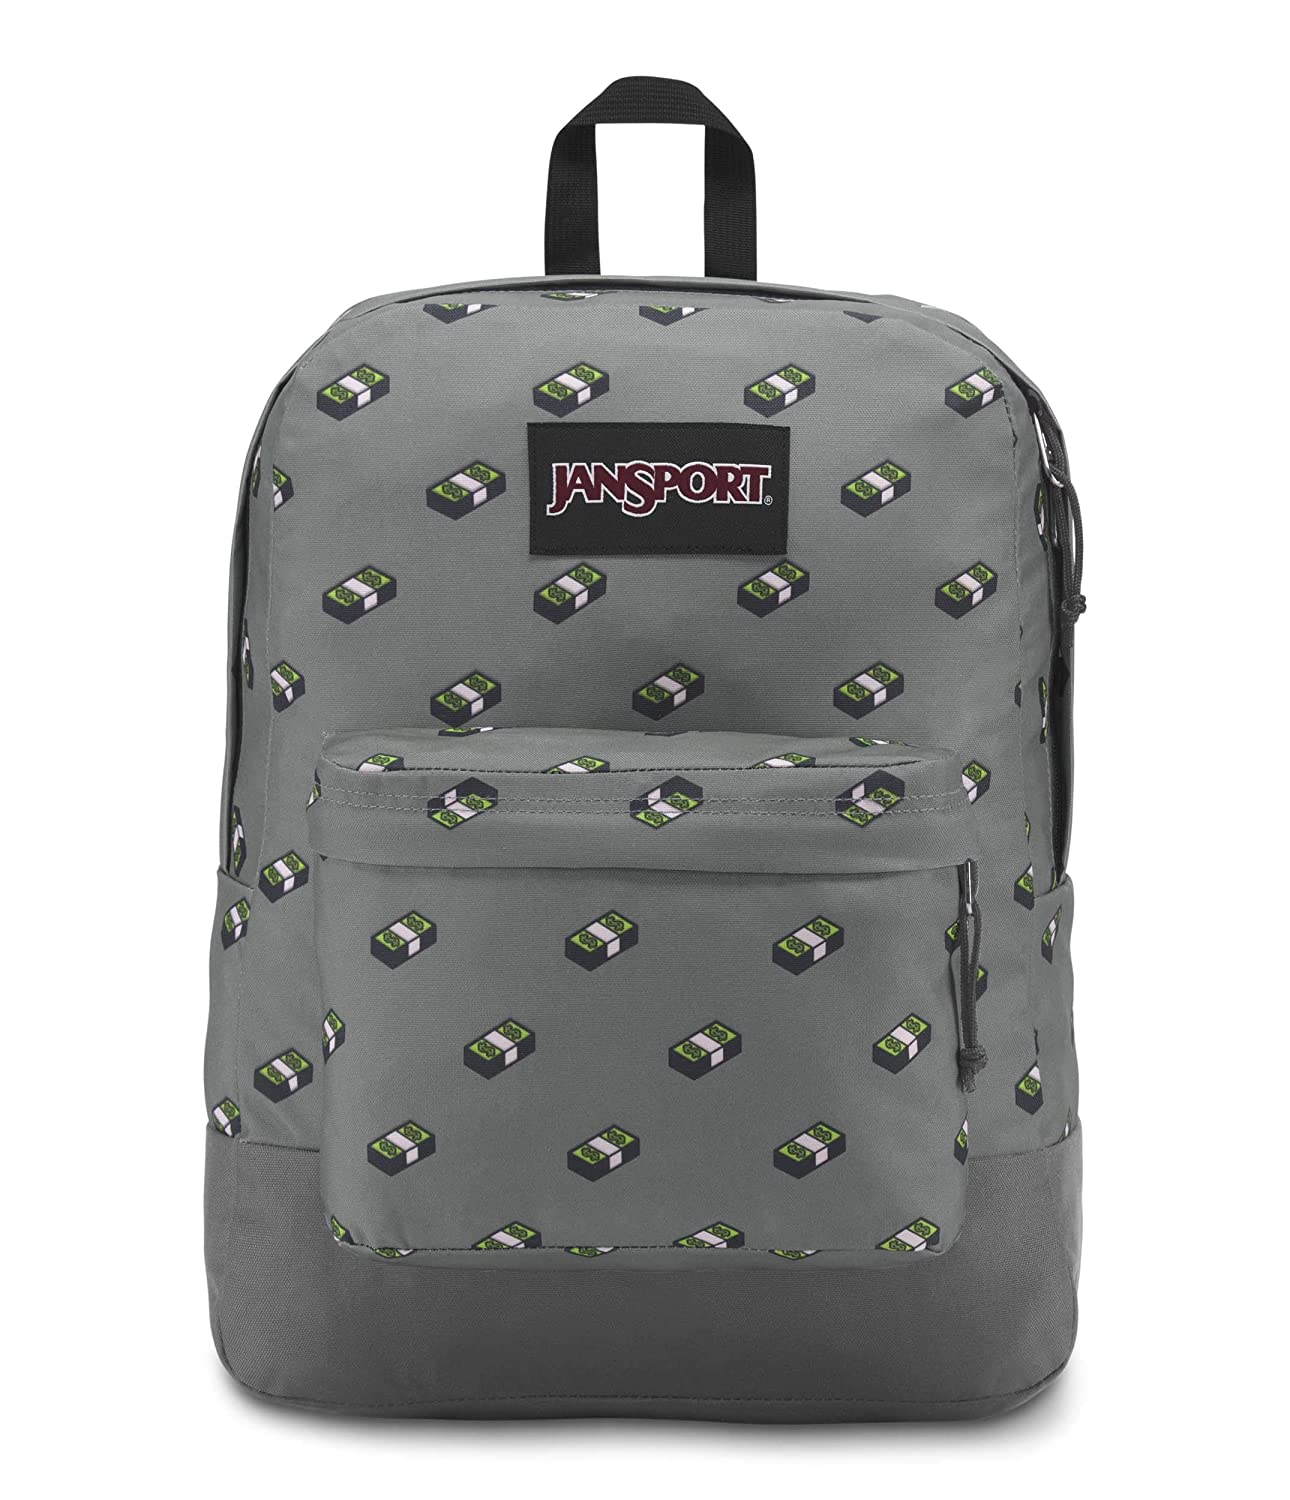 5adefb02494 Jansport Camo Backpack Amazon | The Shred Centre